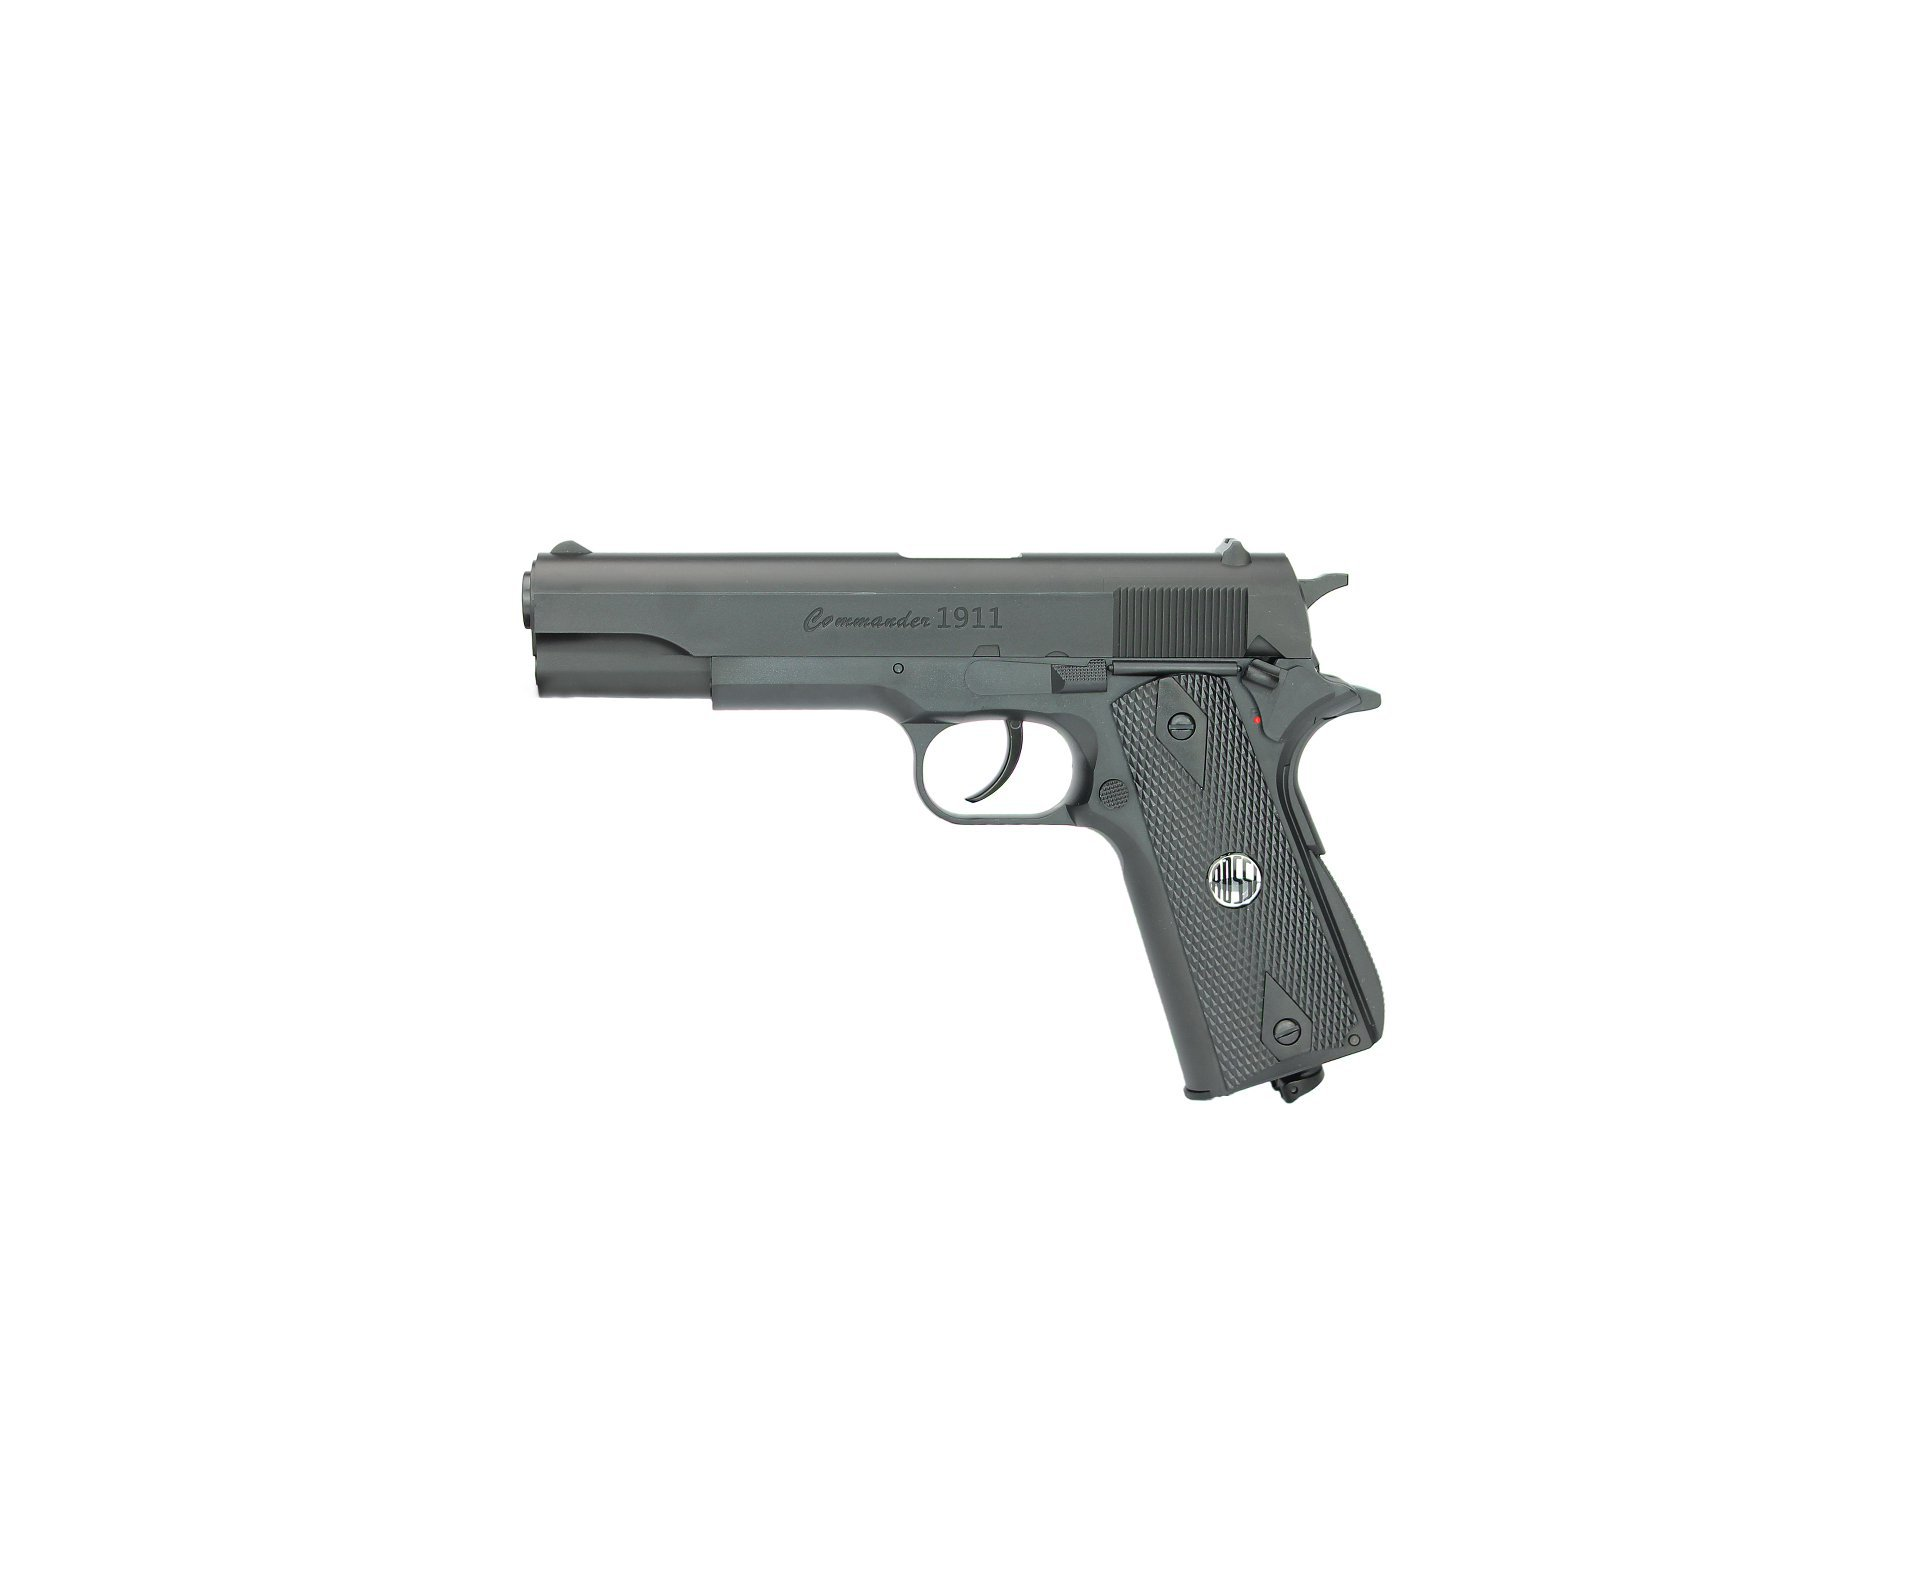 Pistola De Pressão Commander 1911 W125b Co2 Cal 4,5mm Win Gun Rossi